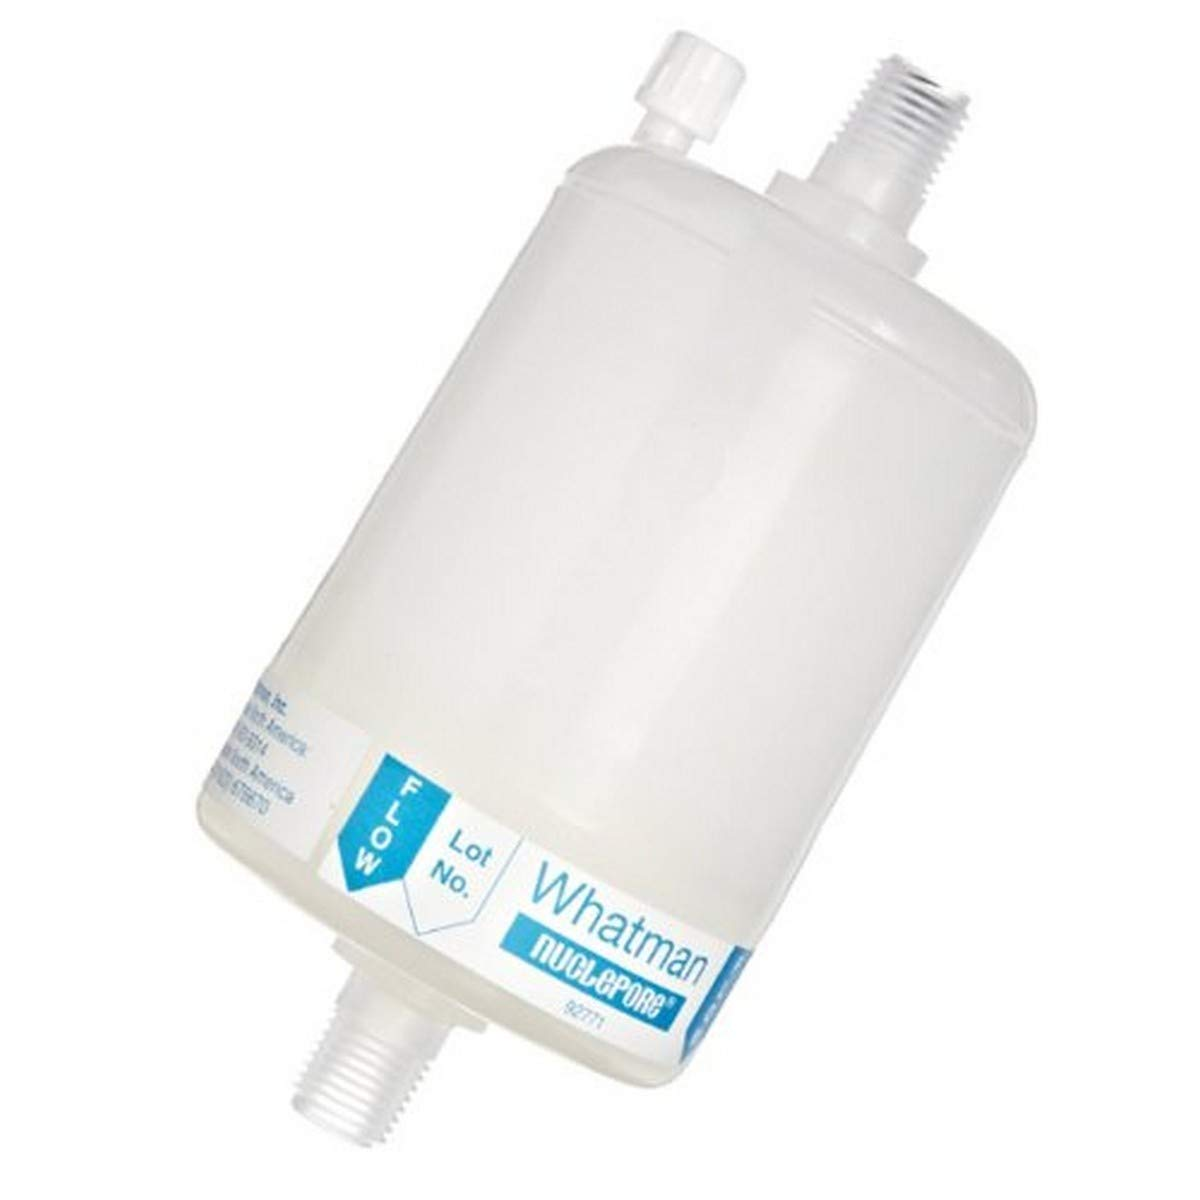 Whatman 6710-7502 Polycap TF 75 PTFE Membrane Capsule Filter with 1//2 SB Inlet and Outlet 60 psi Maximum Pressure 0.2 Micron